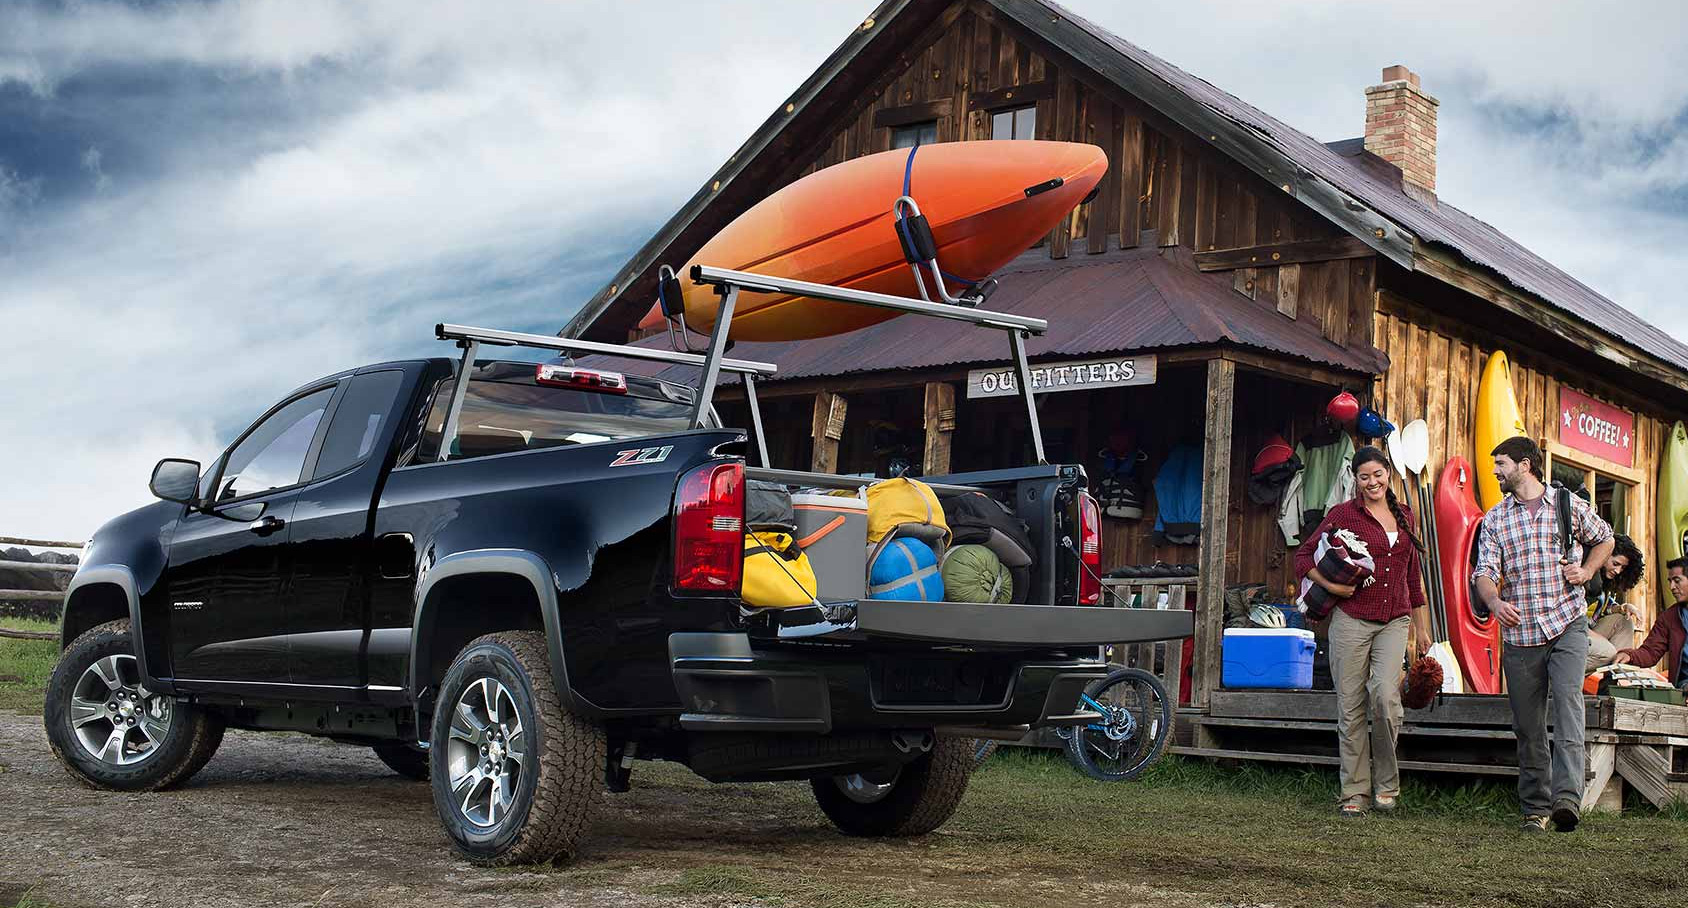 Valley Chevy - Man Buying New Chevrolet Vehicle: Colorado Outting